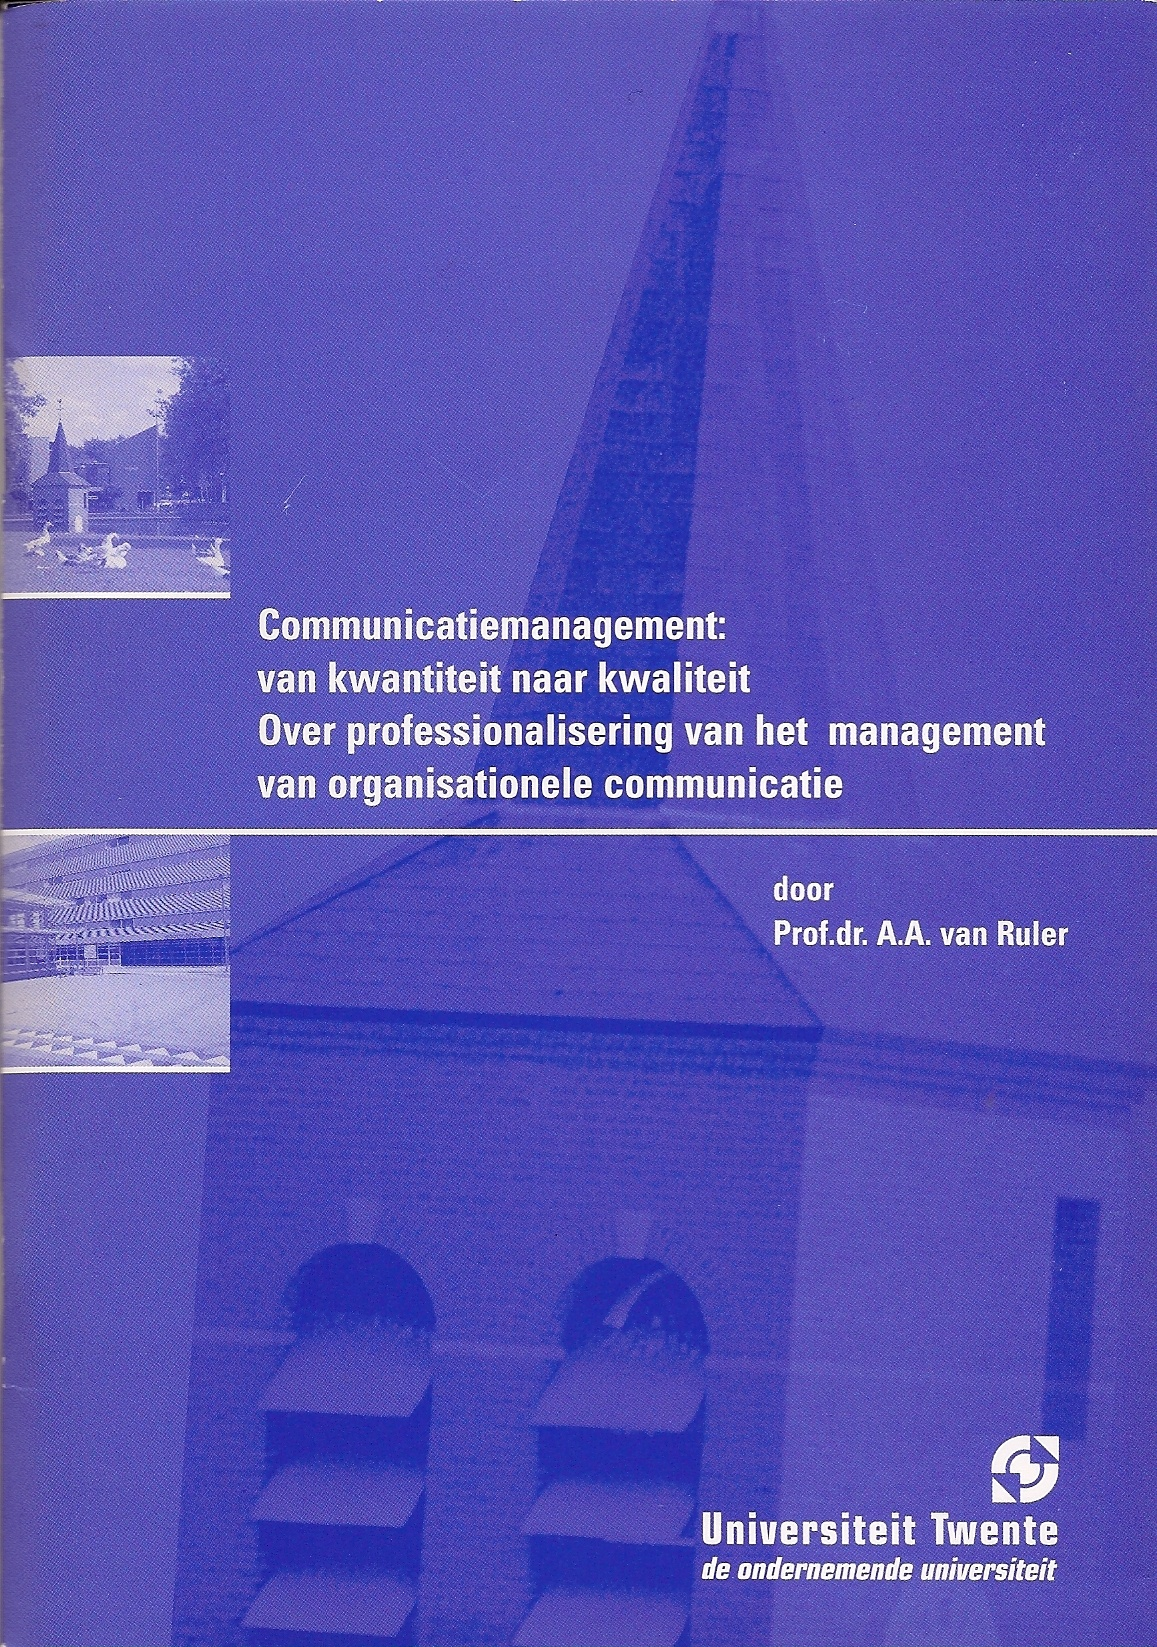 Communiucatiemanagement oratie Twente